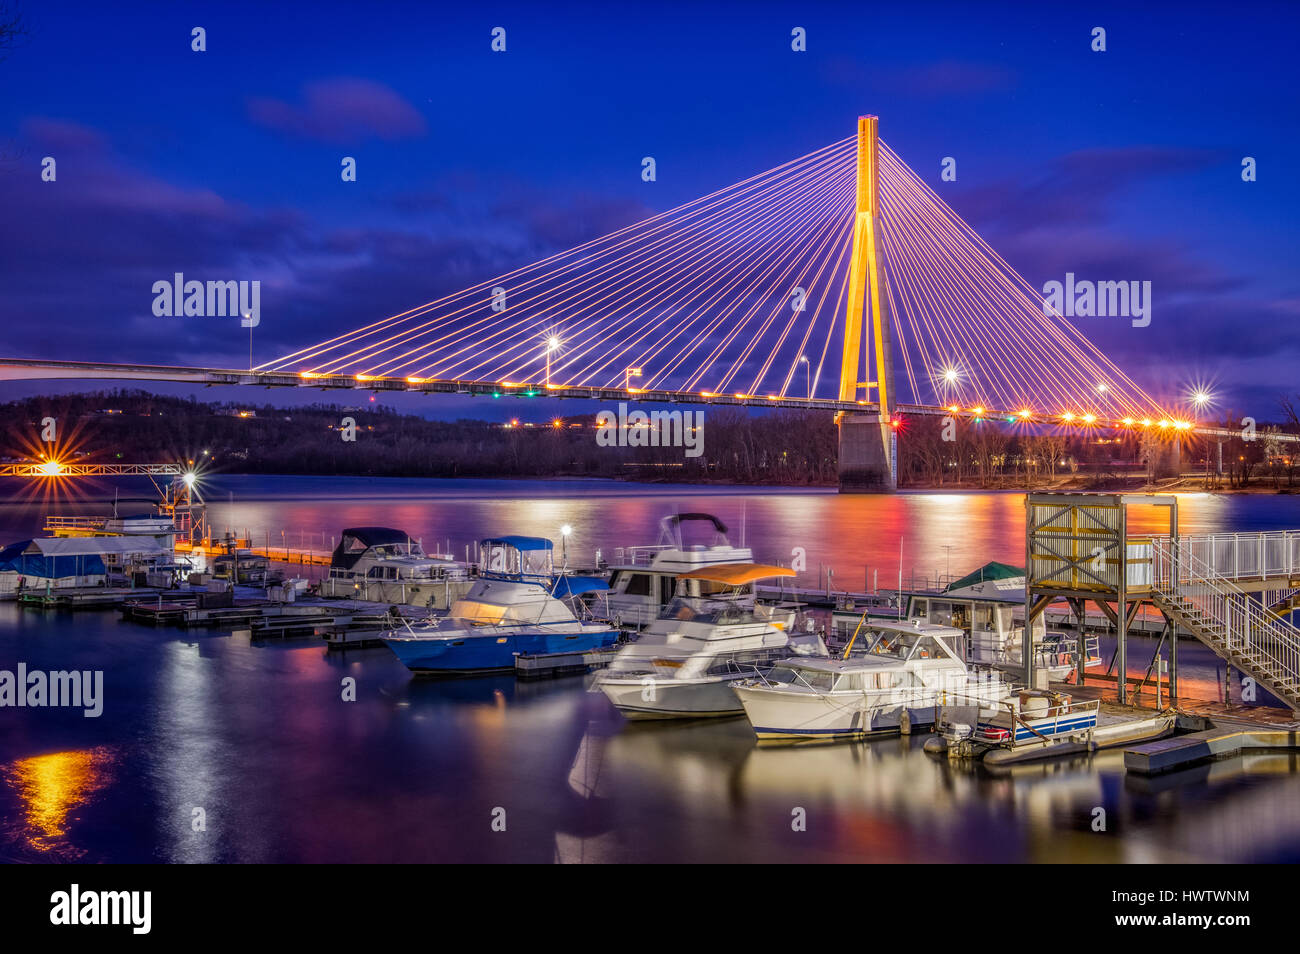 The suspension bridge spanning the Ohio River from Huntington, West Virginia at night. - Stock Image